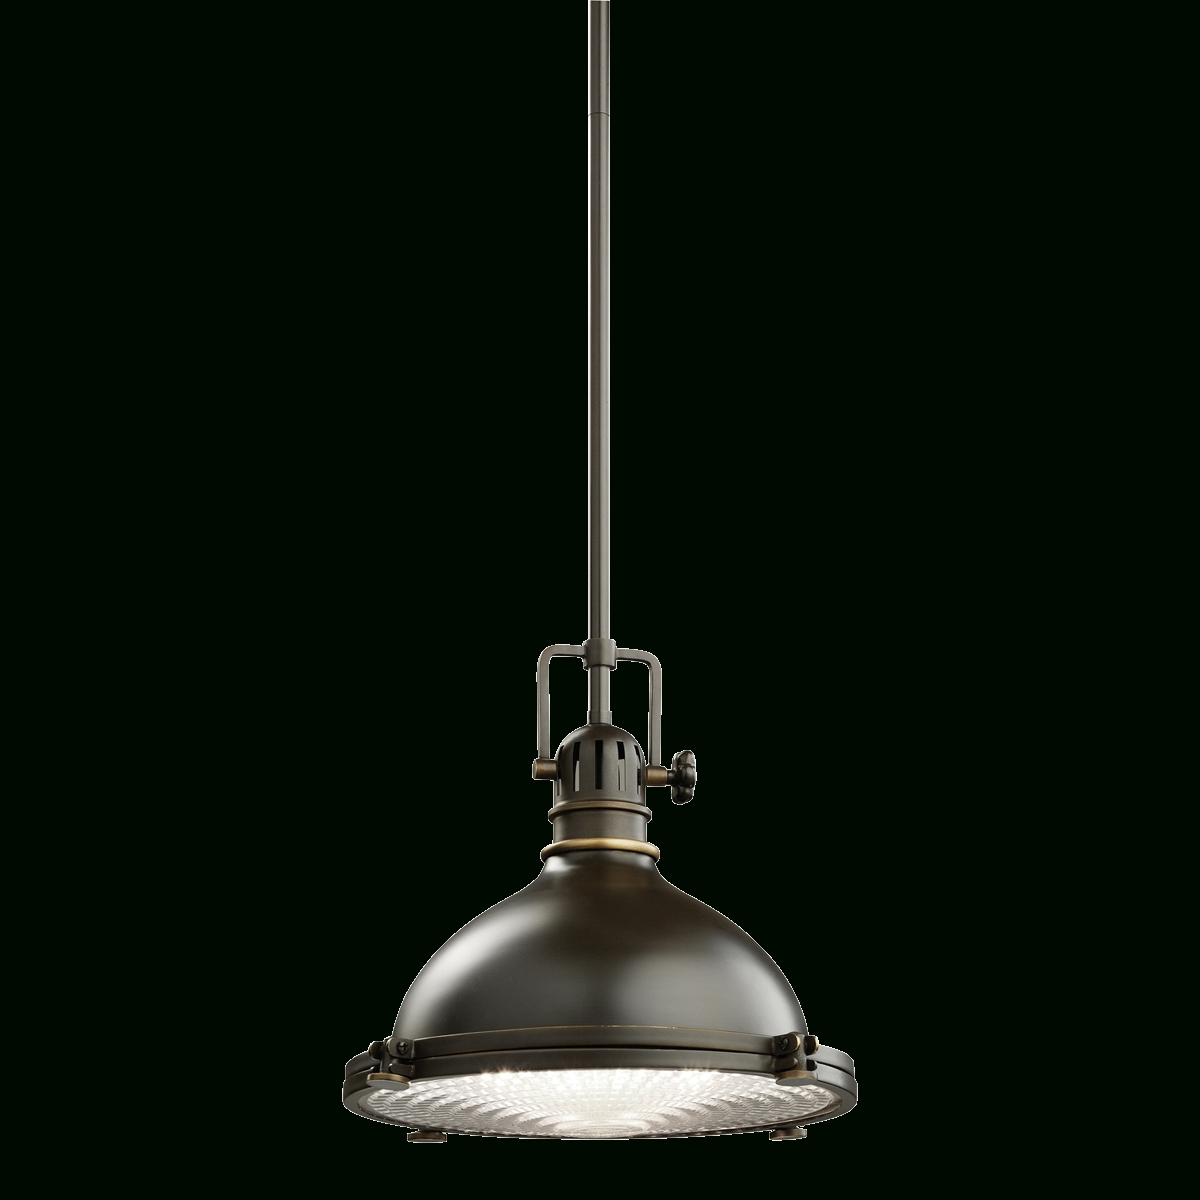 Lighting Fixtures Cheap: 2019 Popular Cheap Industrial Pendant Lighting